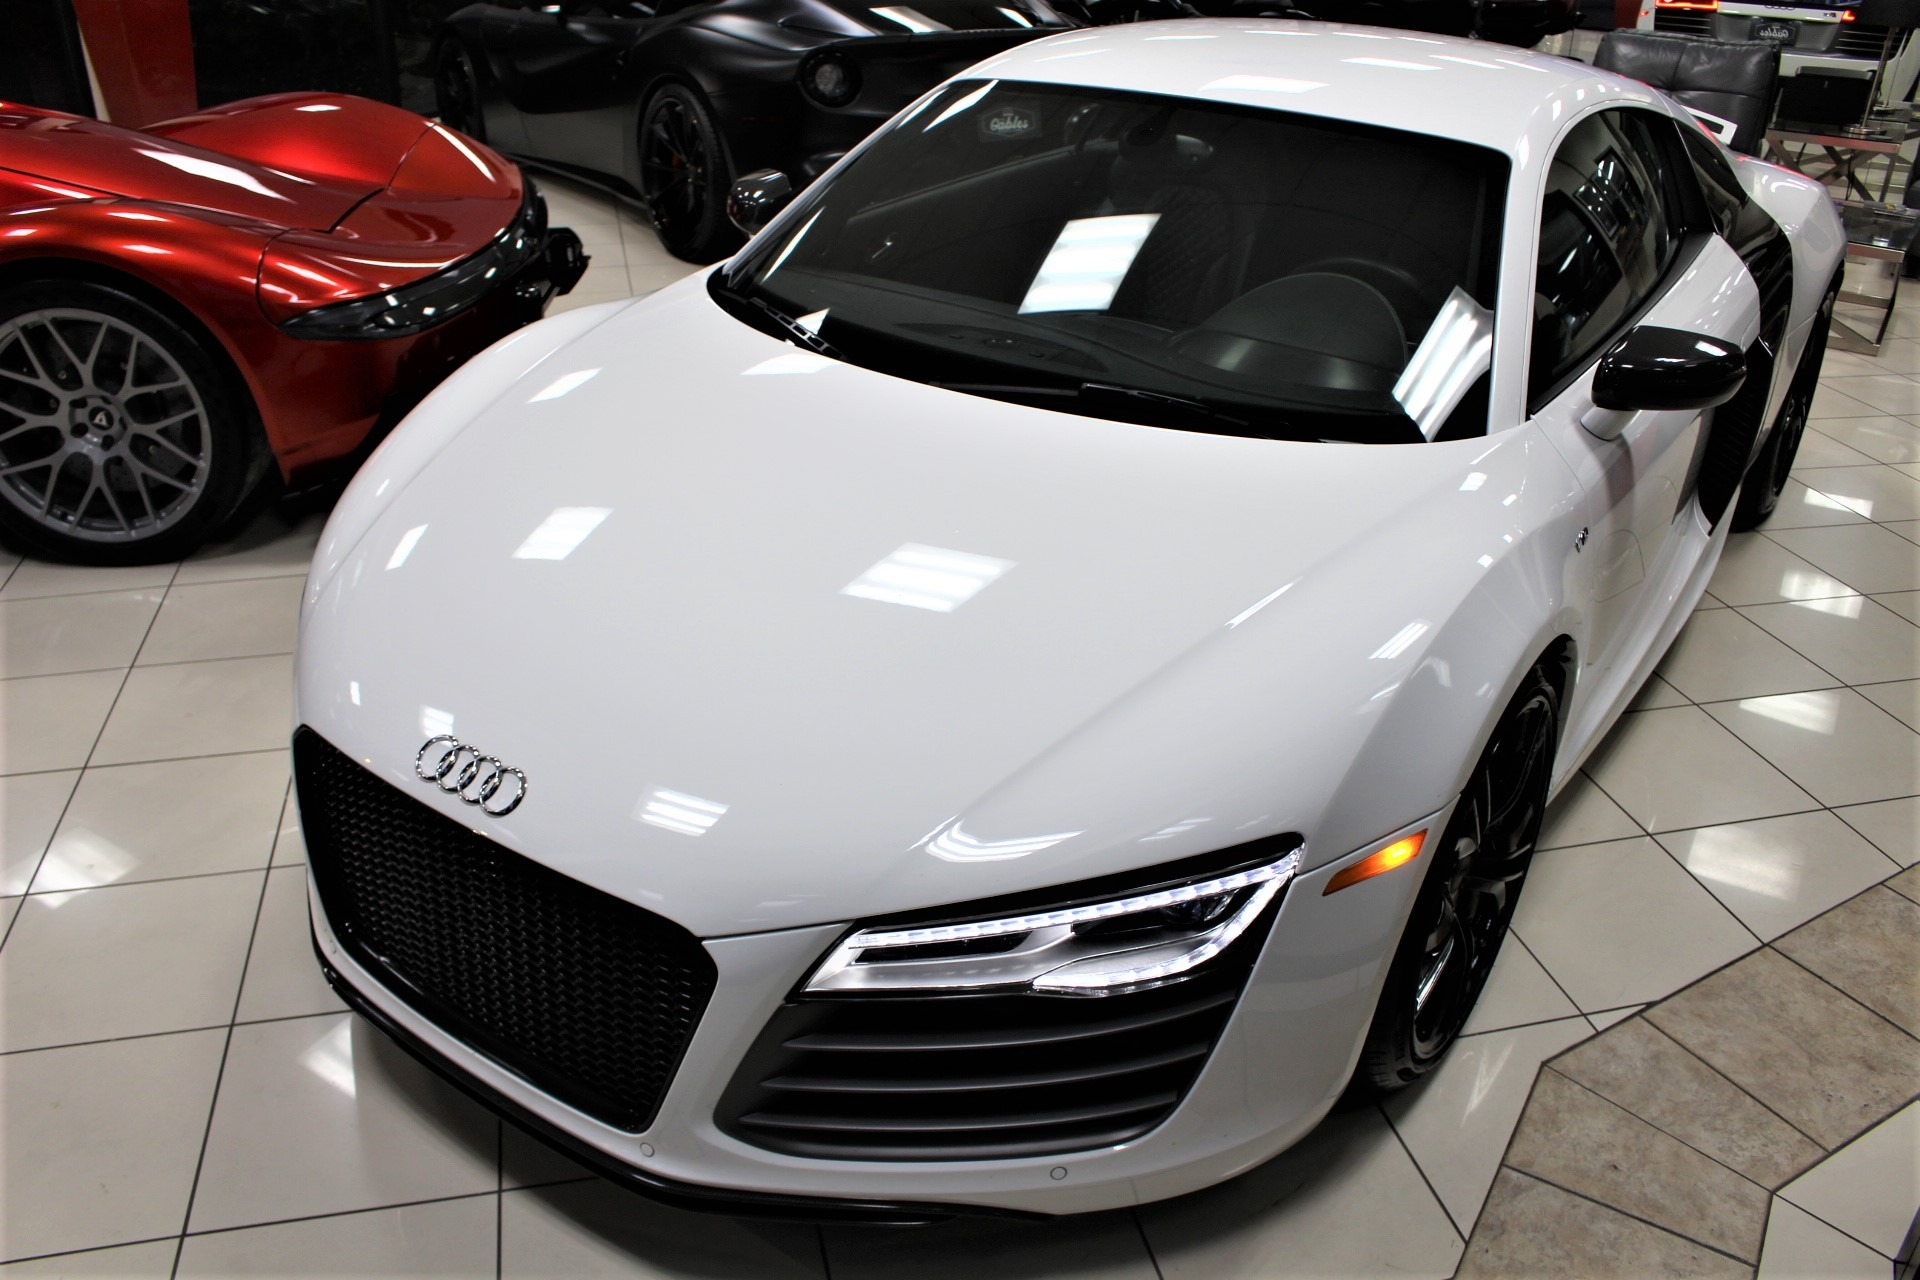 Used 2014 Audi R8 Plus 5.2 quattro for sale Sold at The Gables Sports Cars in Miami FL 33146 2